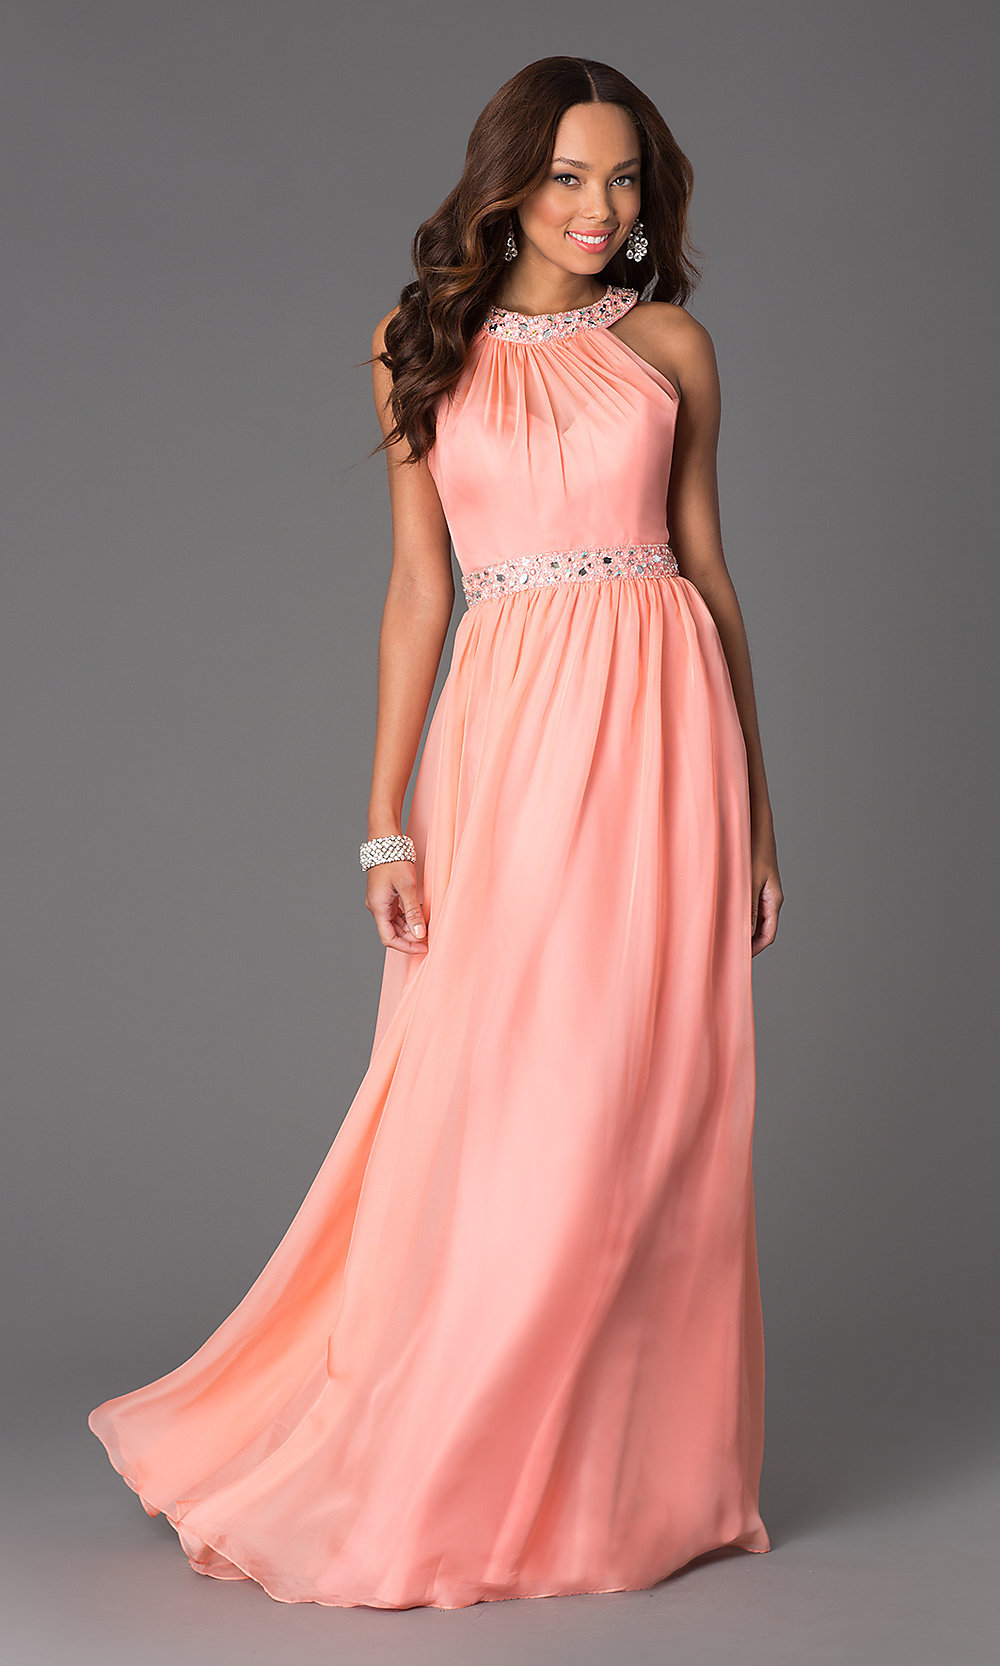 Jewel Embellished Long High Neck Dress Promgirl